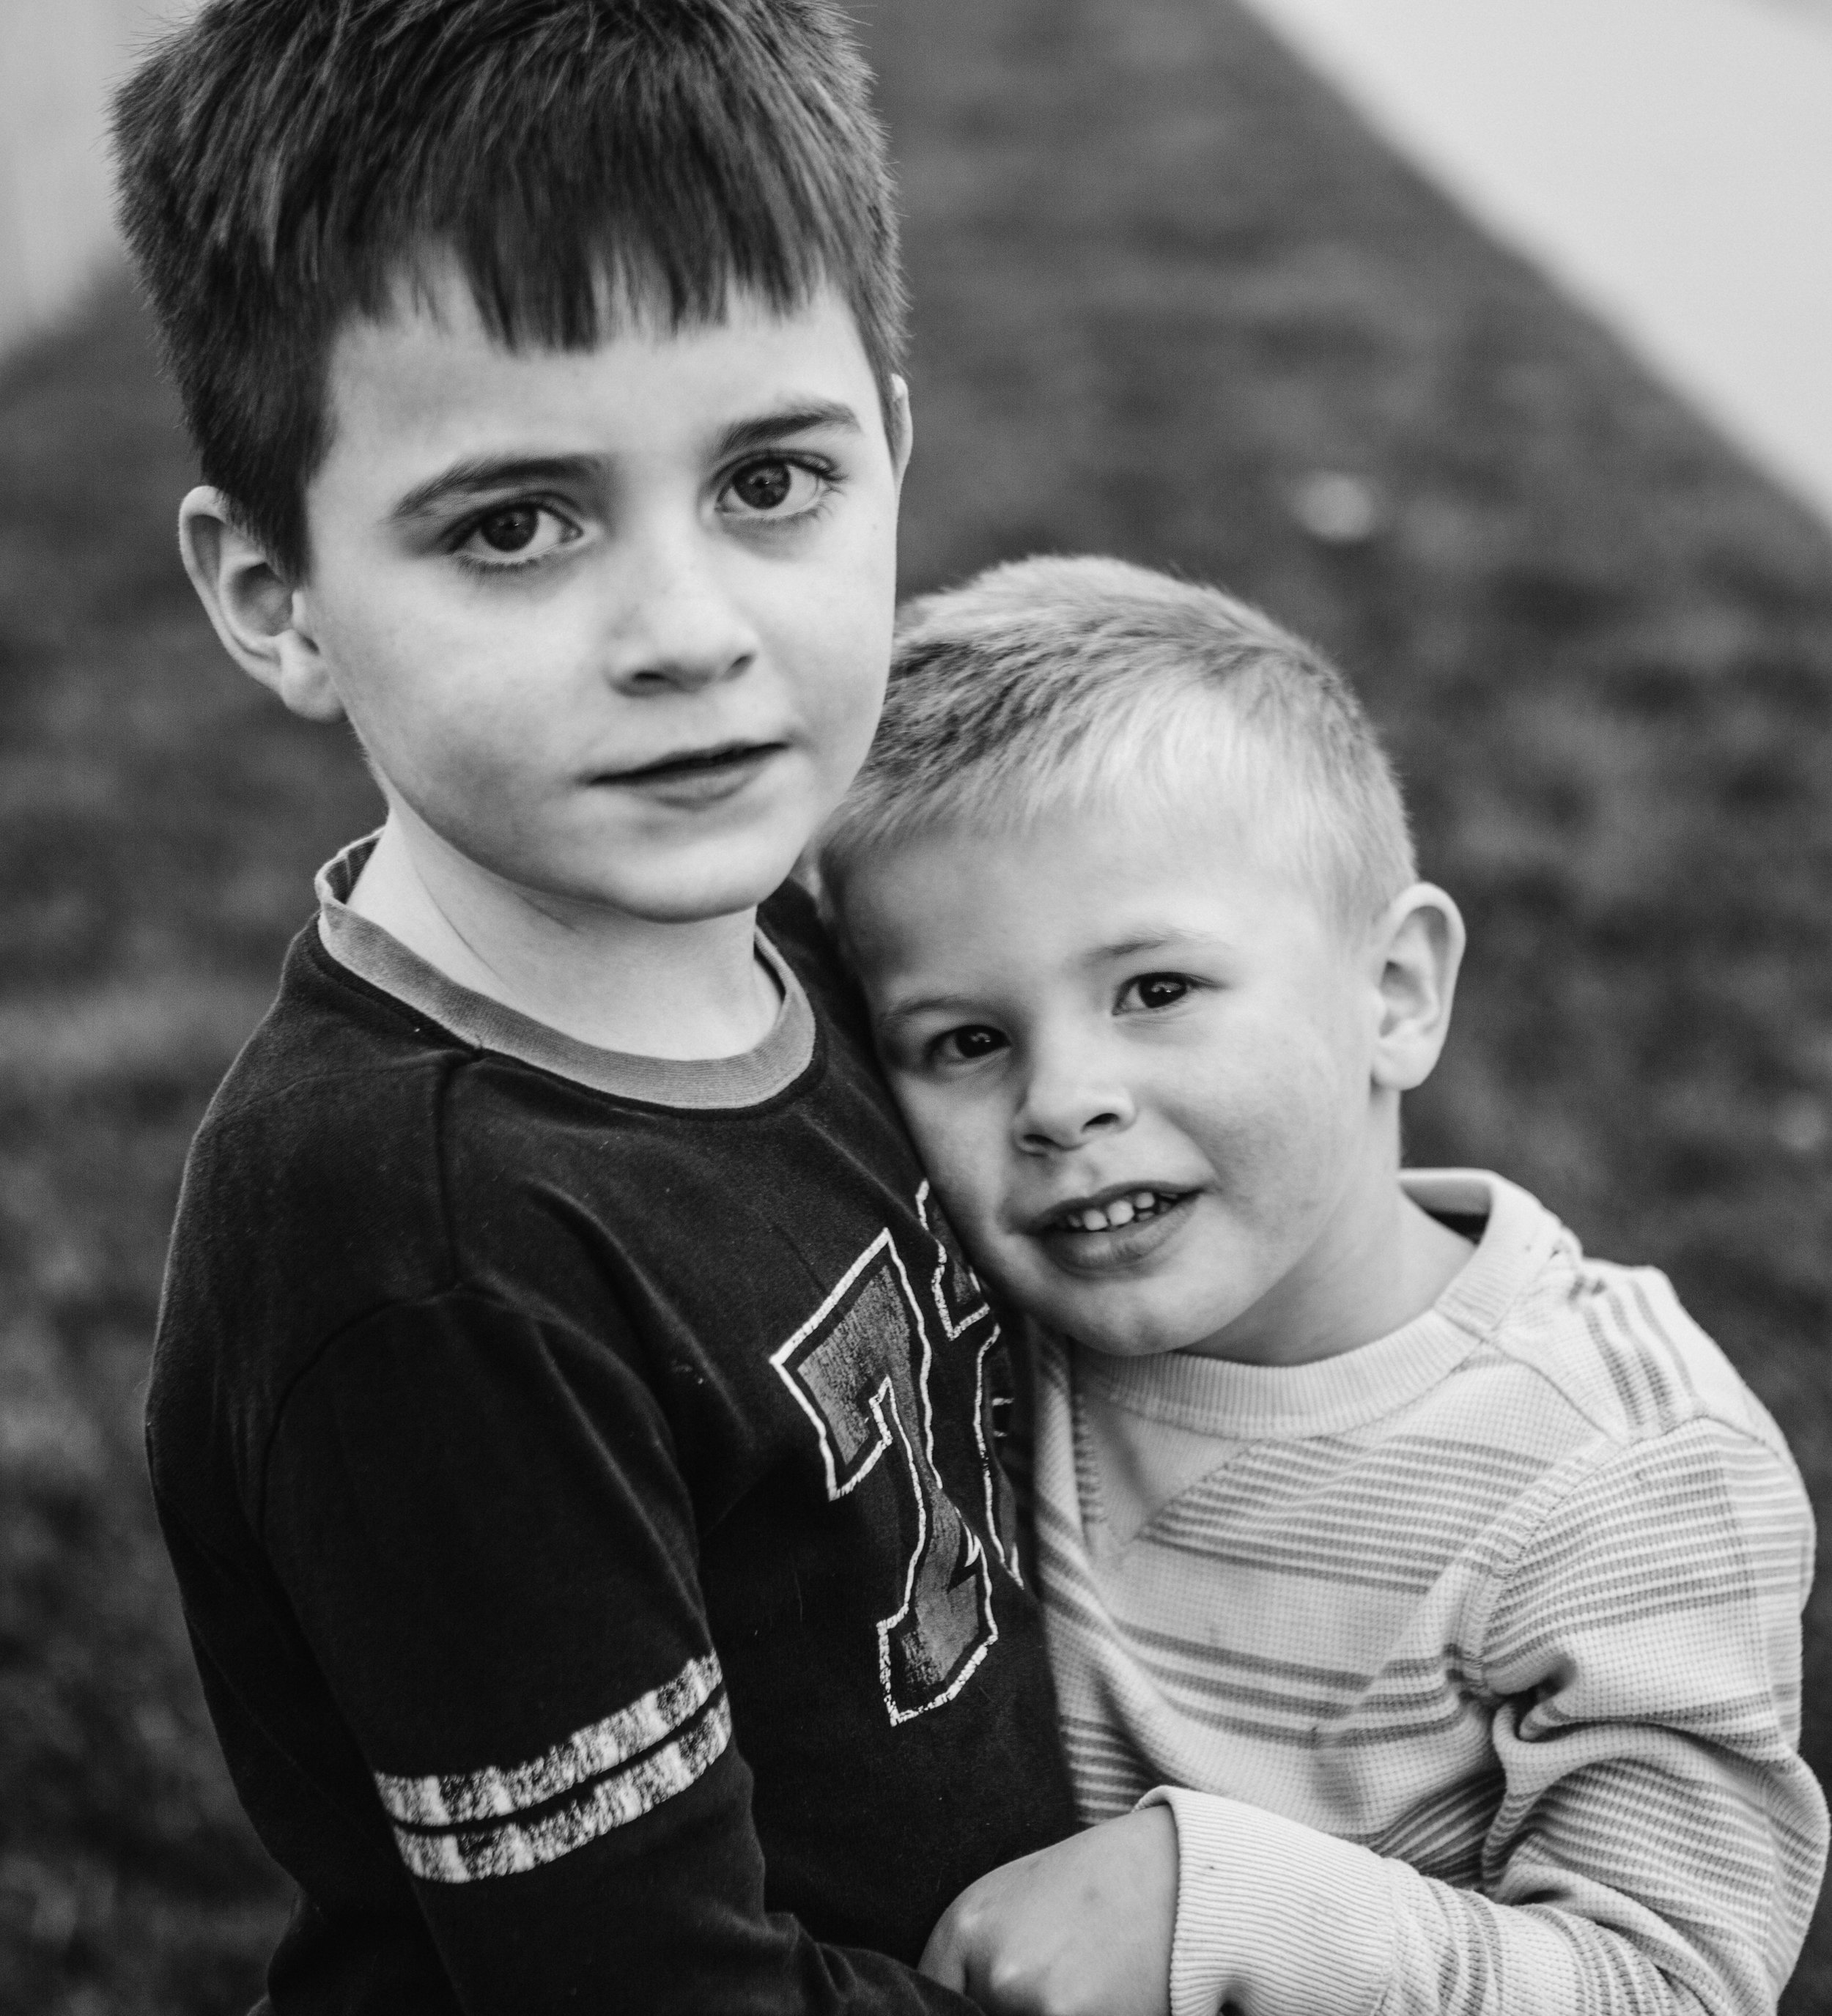 Ryan's two adopted younger brothers. Getting to spend time with them and other family was a real highlight of this last year.